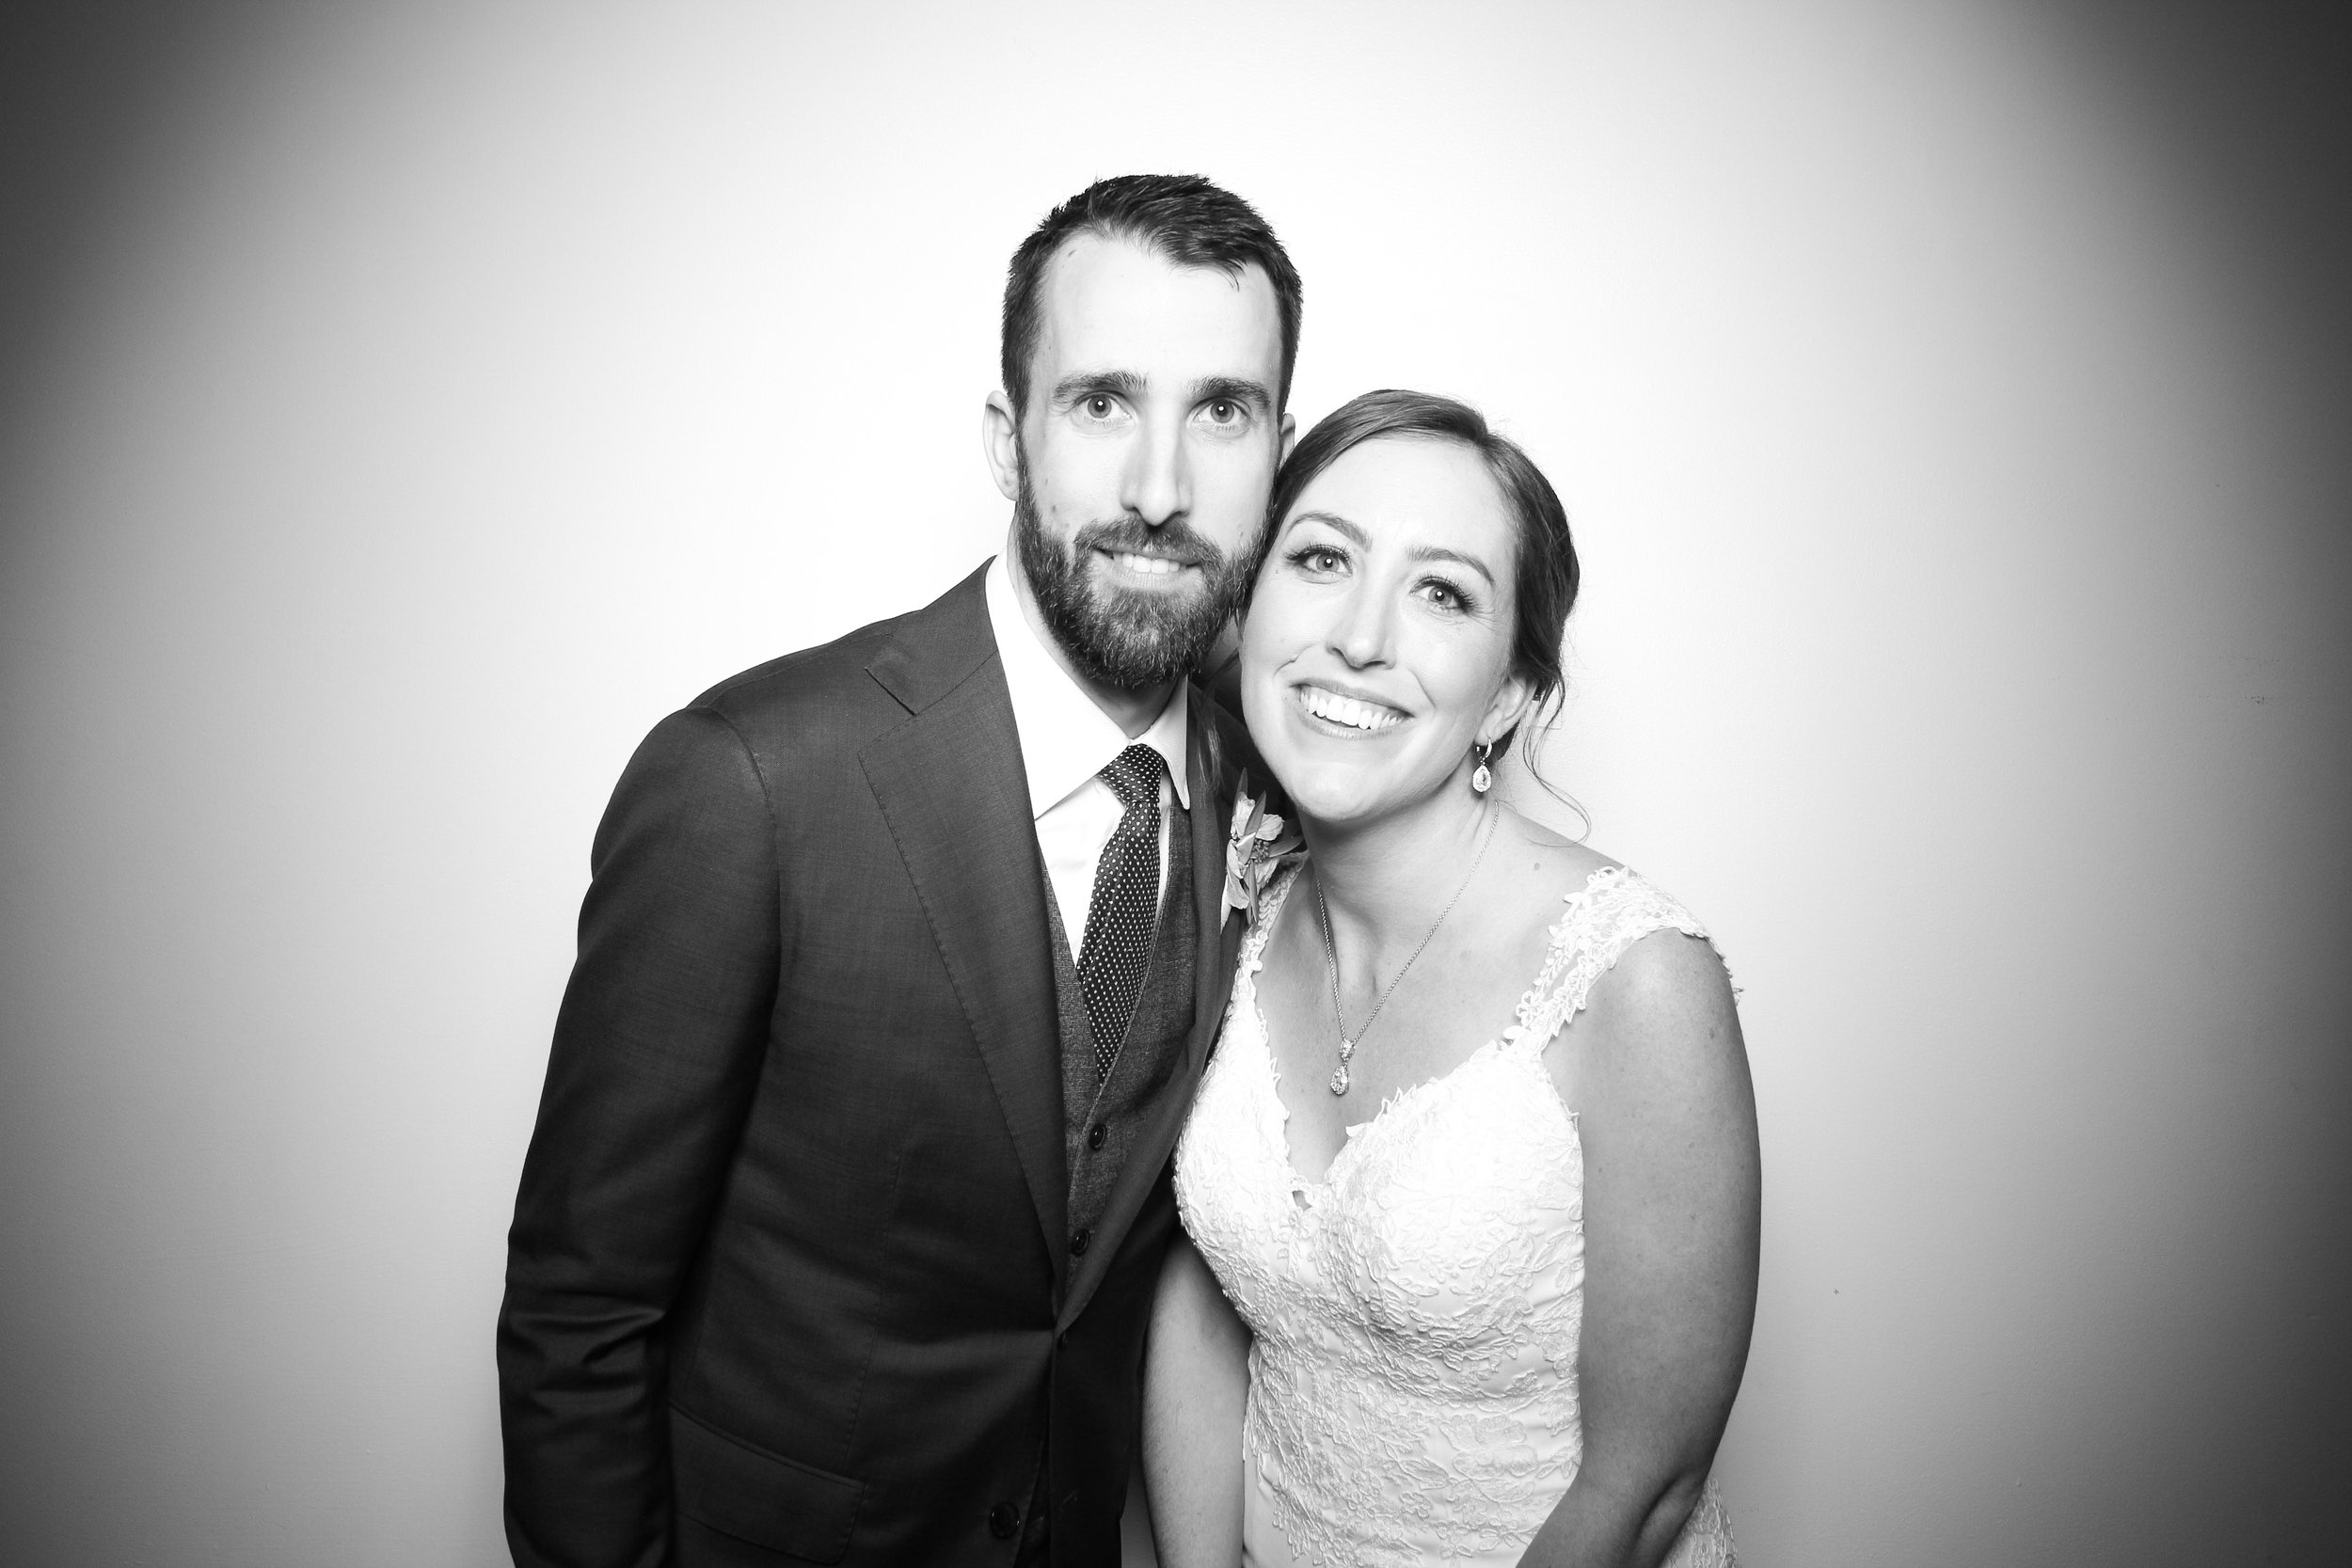 Chicago_Vintage_Wedding_Photobooth_Ravenswood_01.jpg